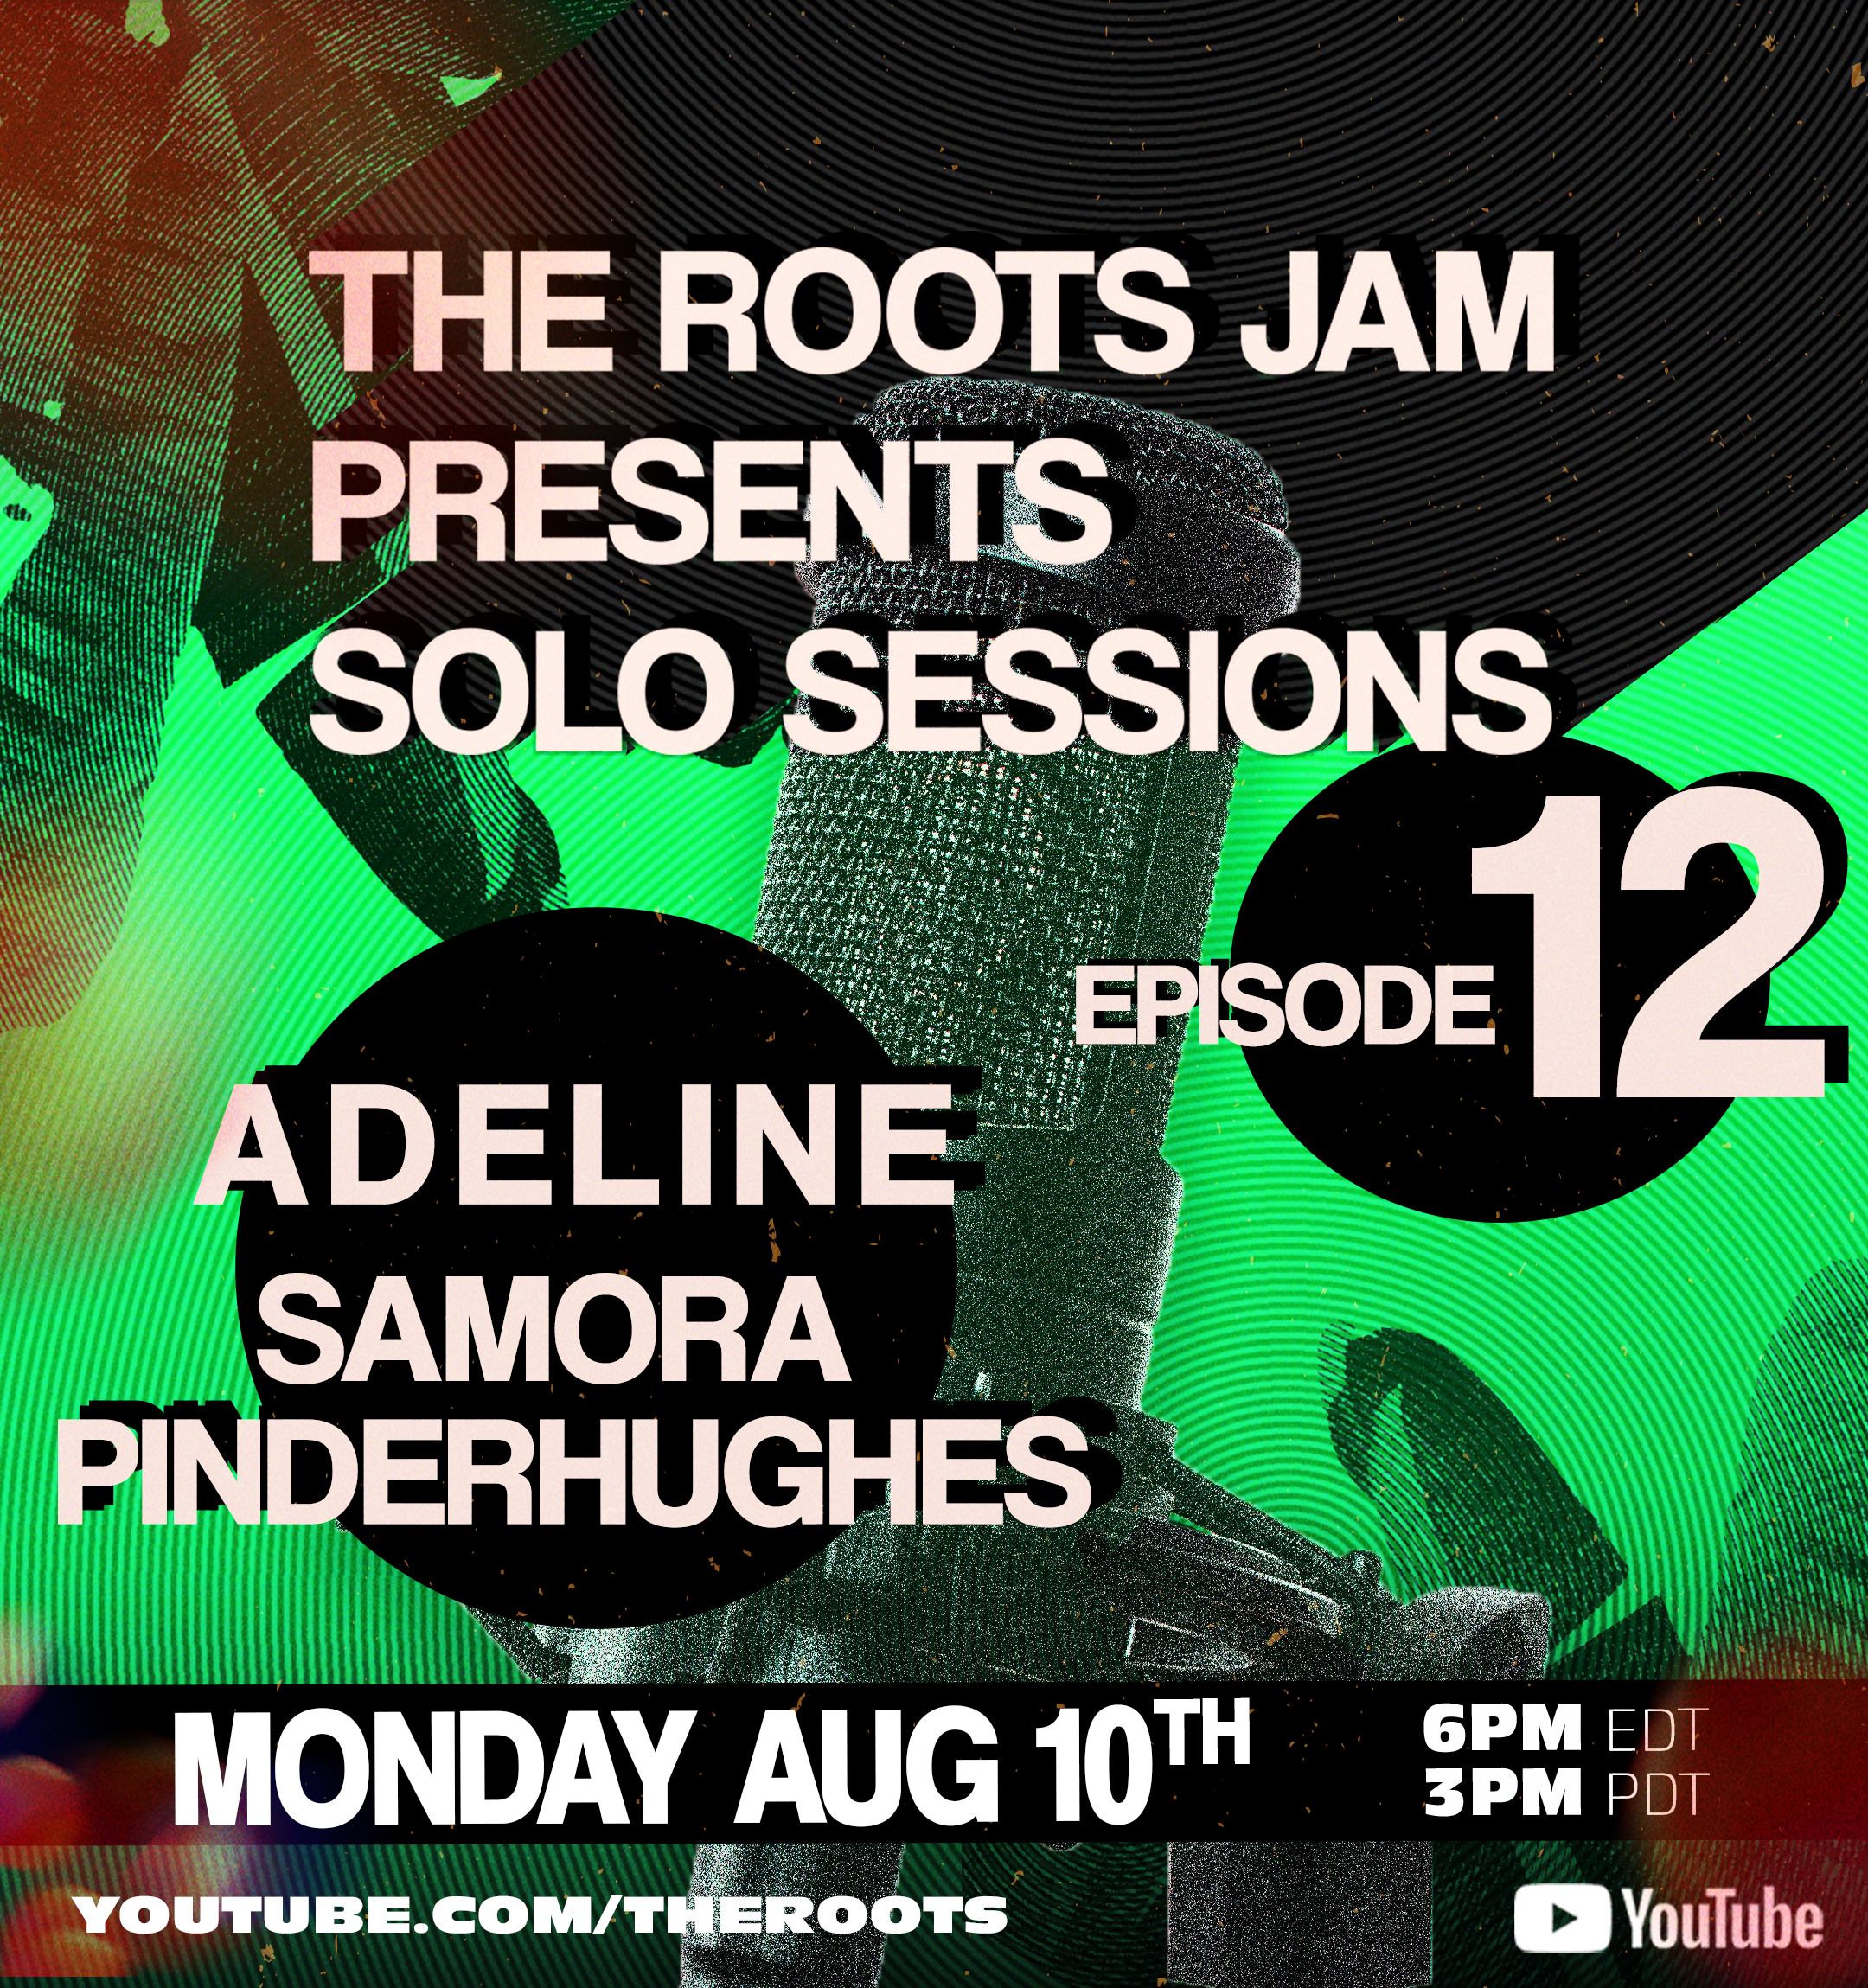 The Roots Session 12